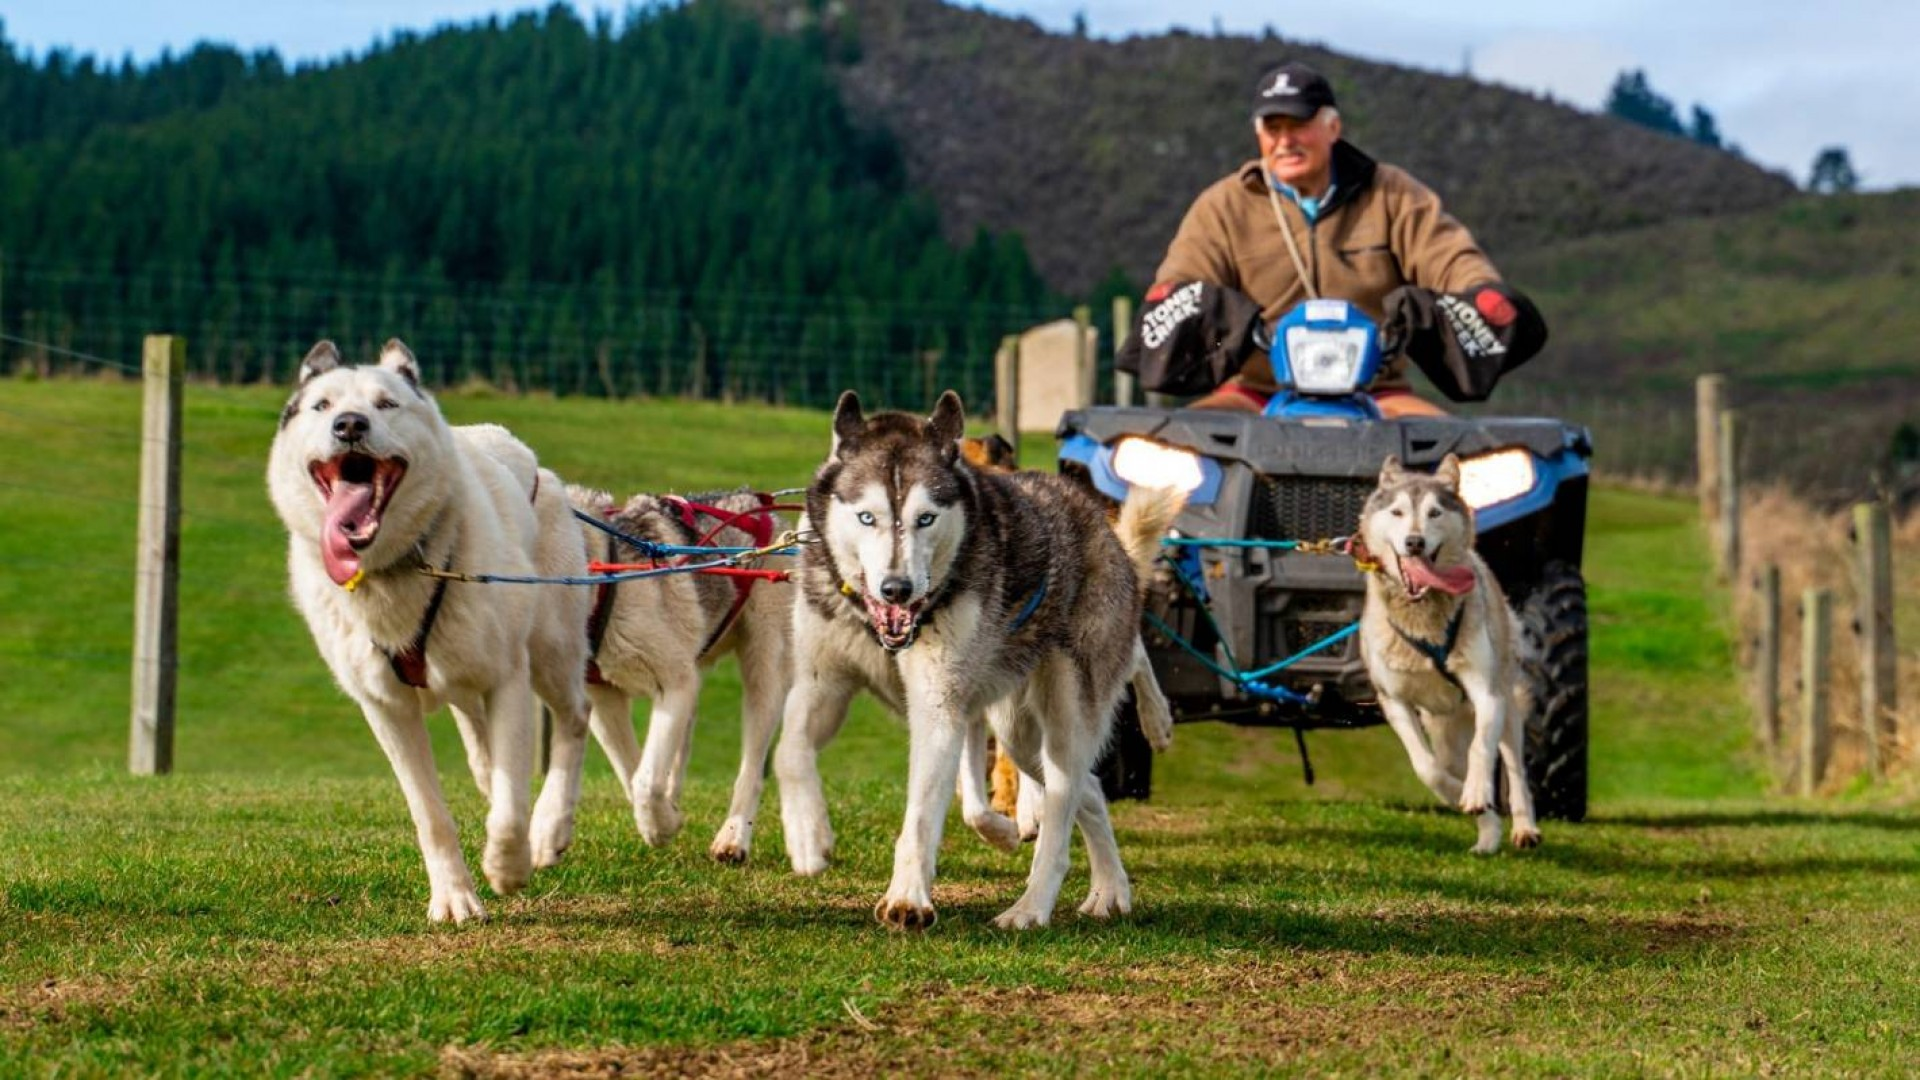 The Sled Dogs – From Siberia to Central Plateau